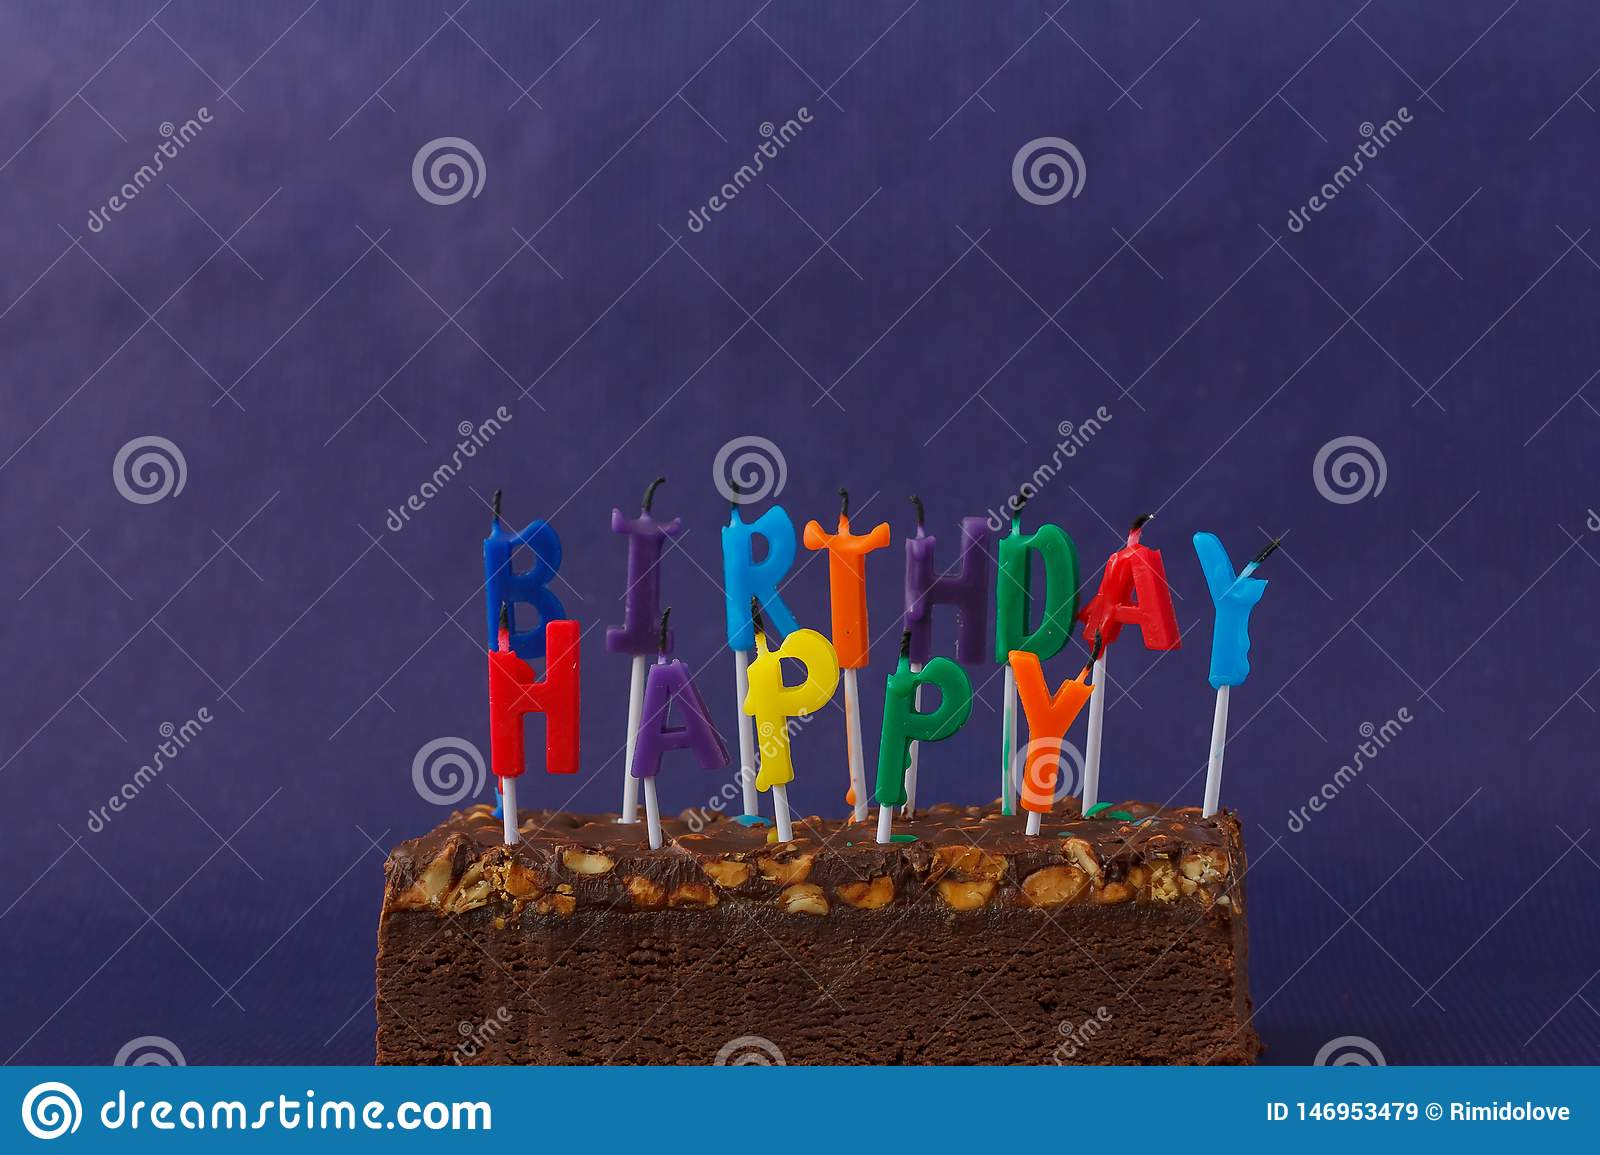 Happy Birthday Brownie Cake with Peanuts, Salted Caramel and Colorful Unlighted Candles on the Violet Background. Copy Space for